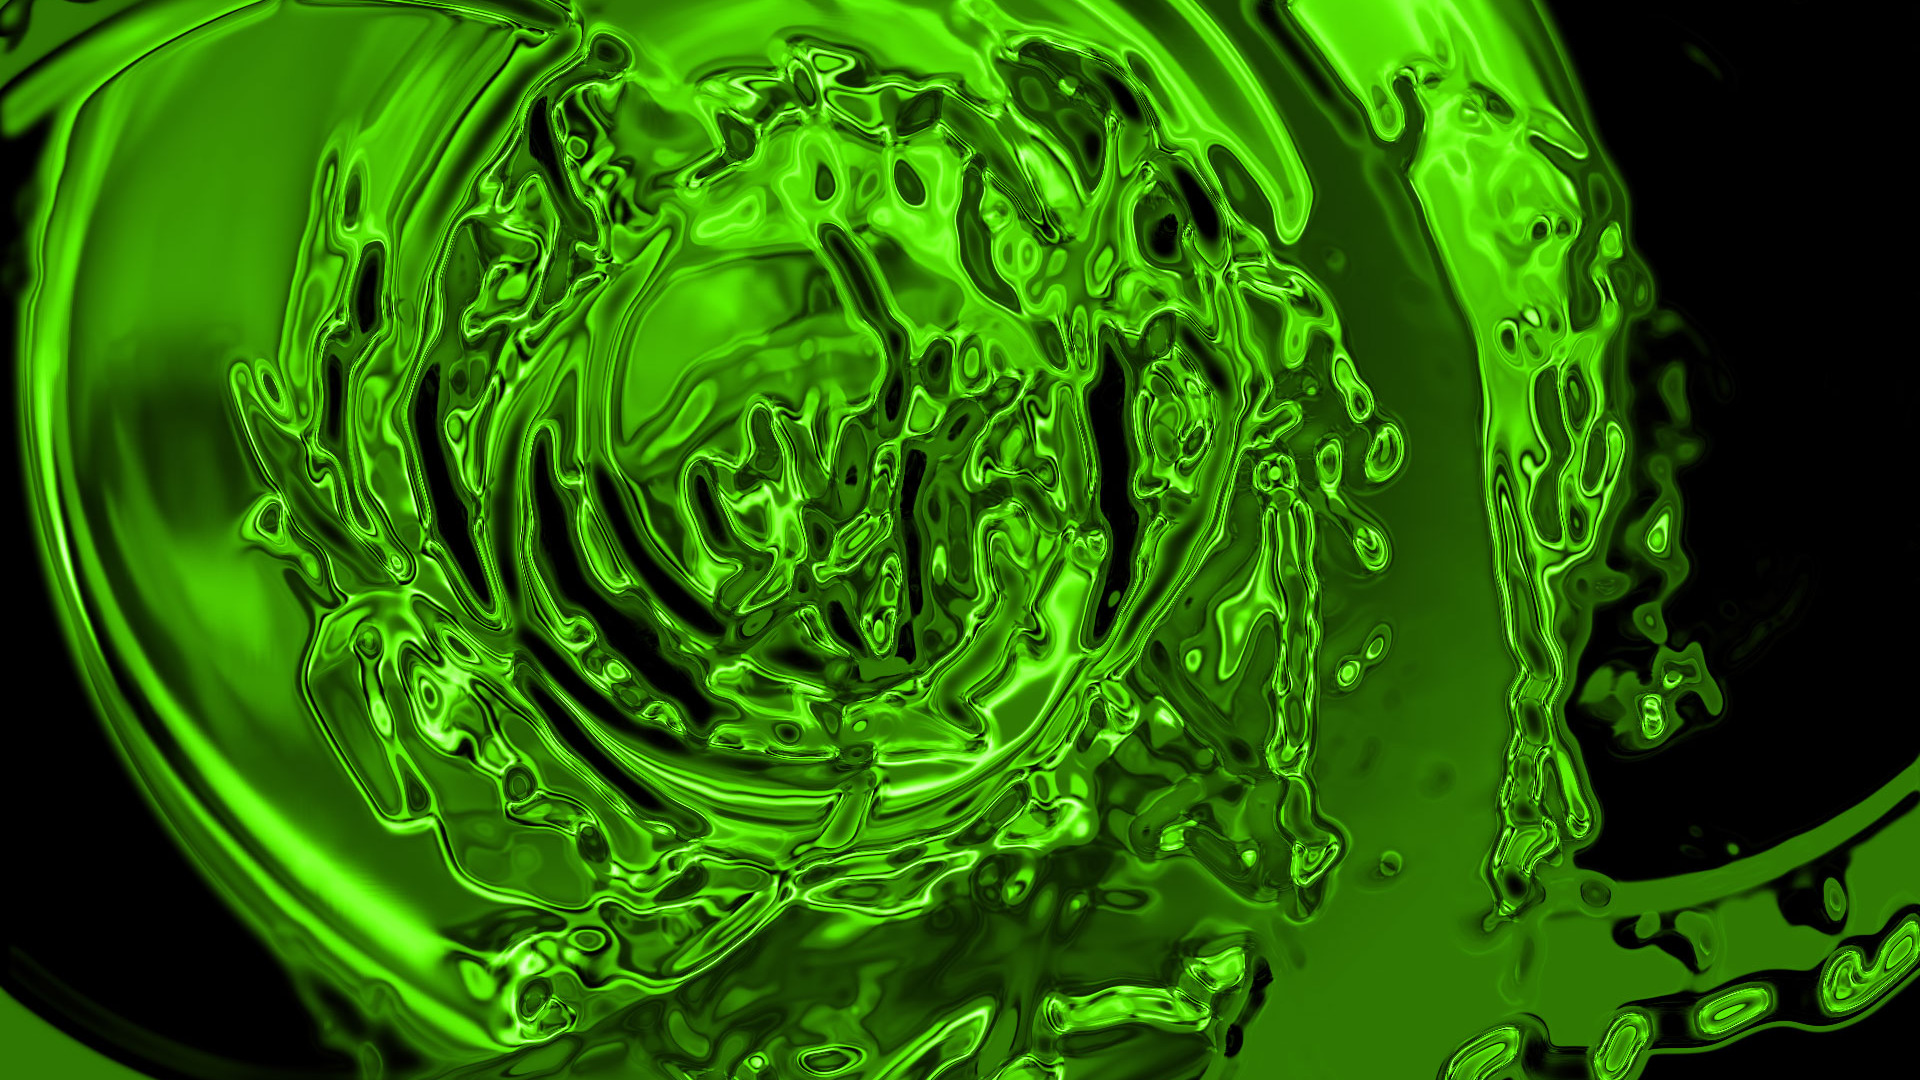 3d Fractal Wallpapers Hd 45 Hd Green Wallpapers Backgrounds For Free Download